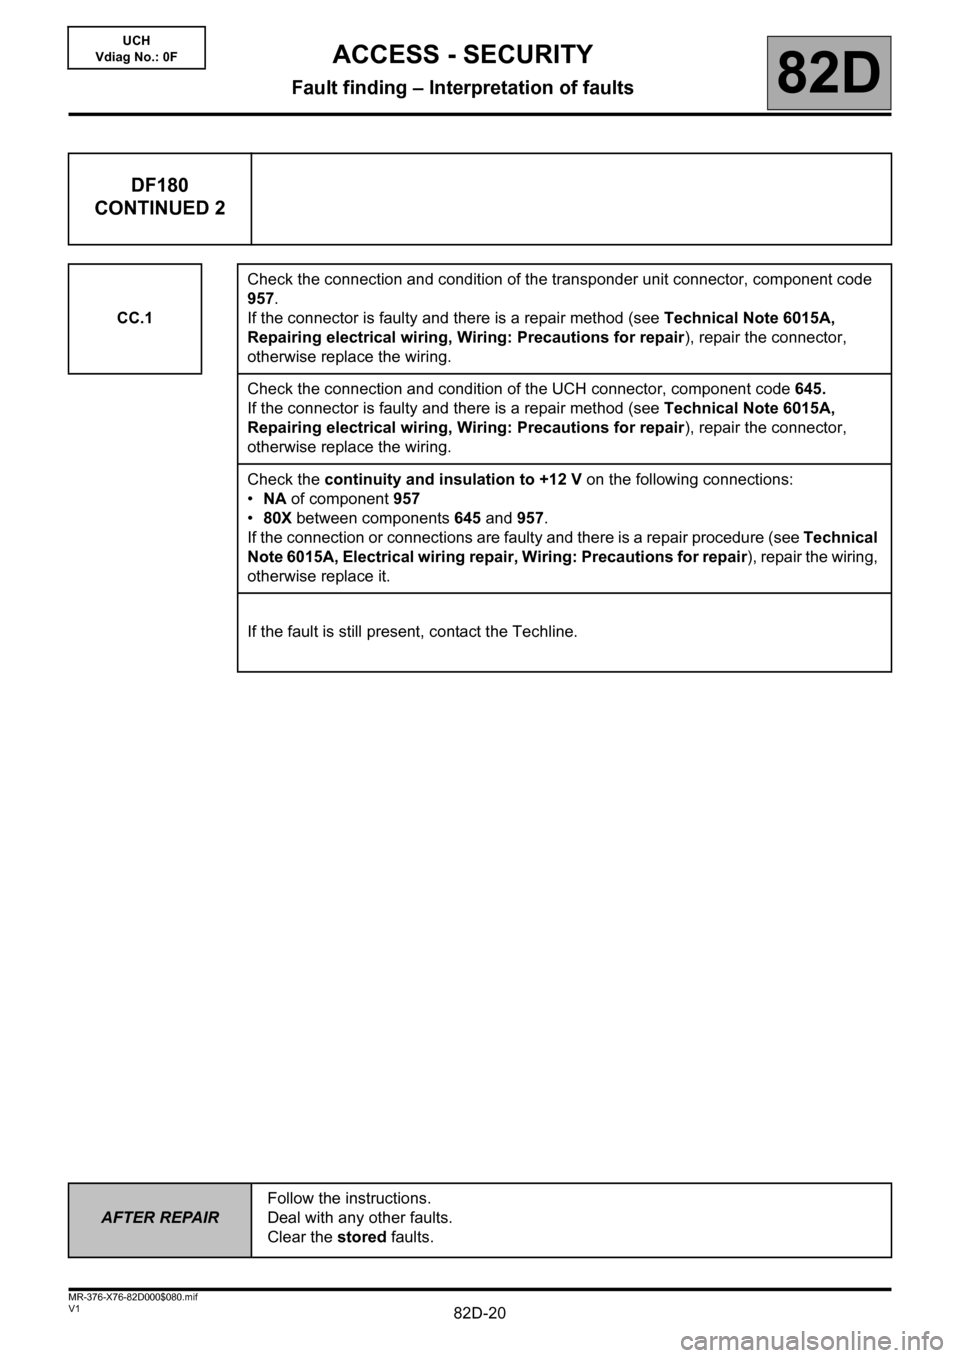 RENAULT KANGOO 2013 X61 / 2.G Access Security Workshop Manual, Page 20